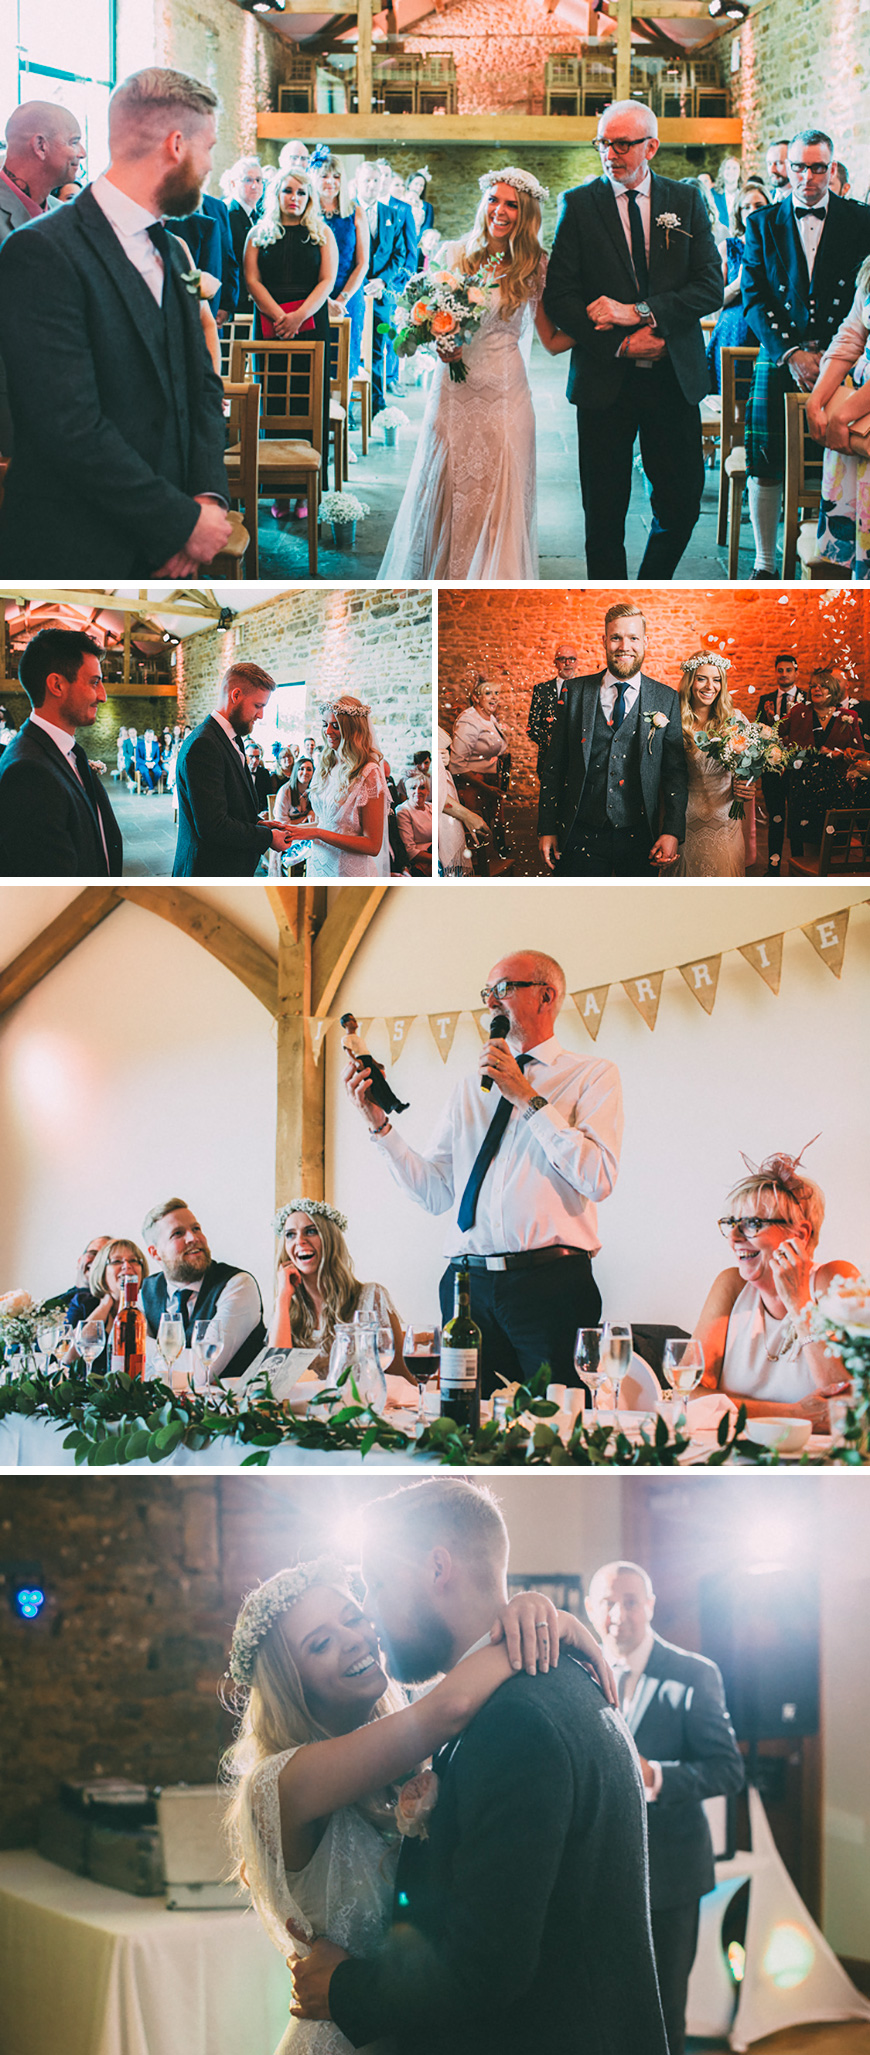 Real Wedding - Fiona and Josh's Unique Themed Wedding at Dodford Manor - The day